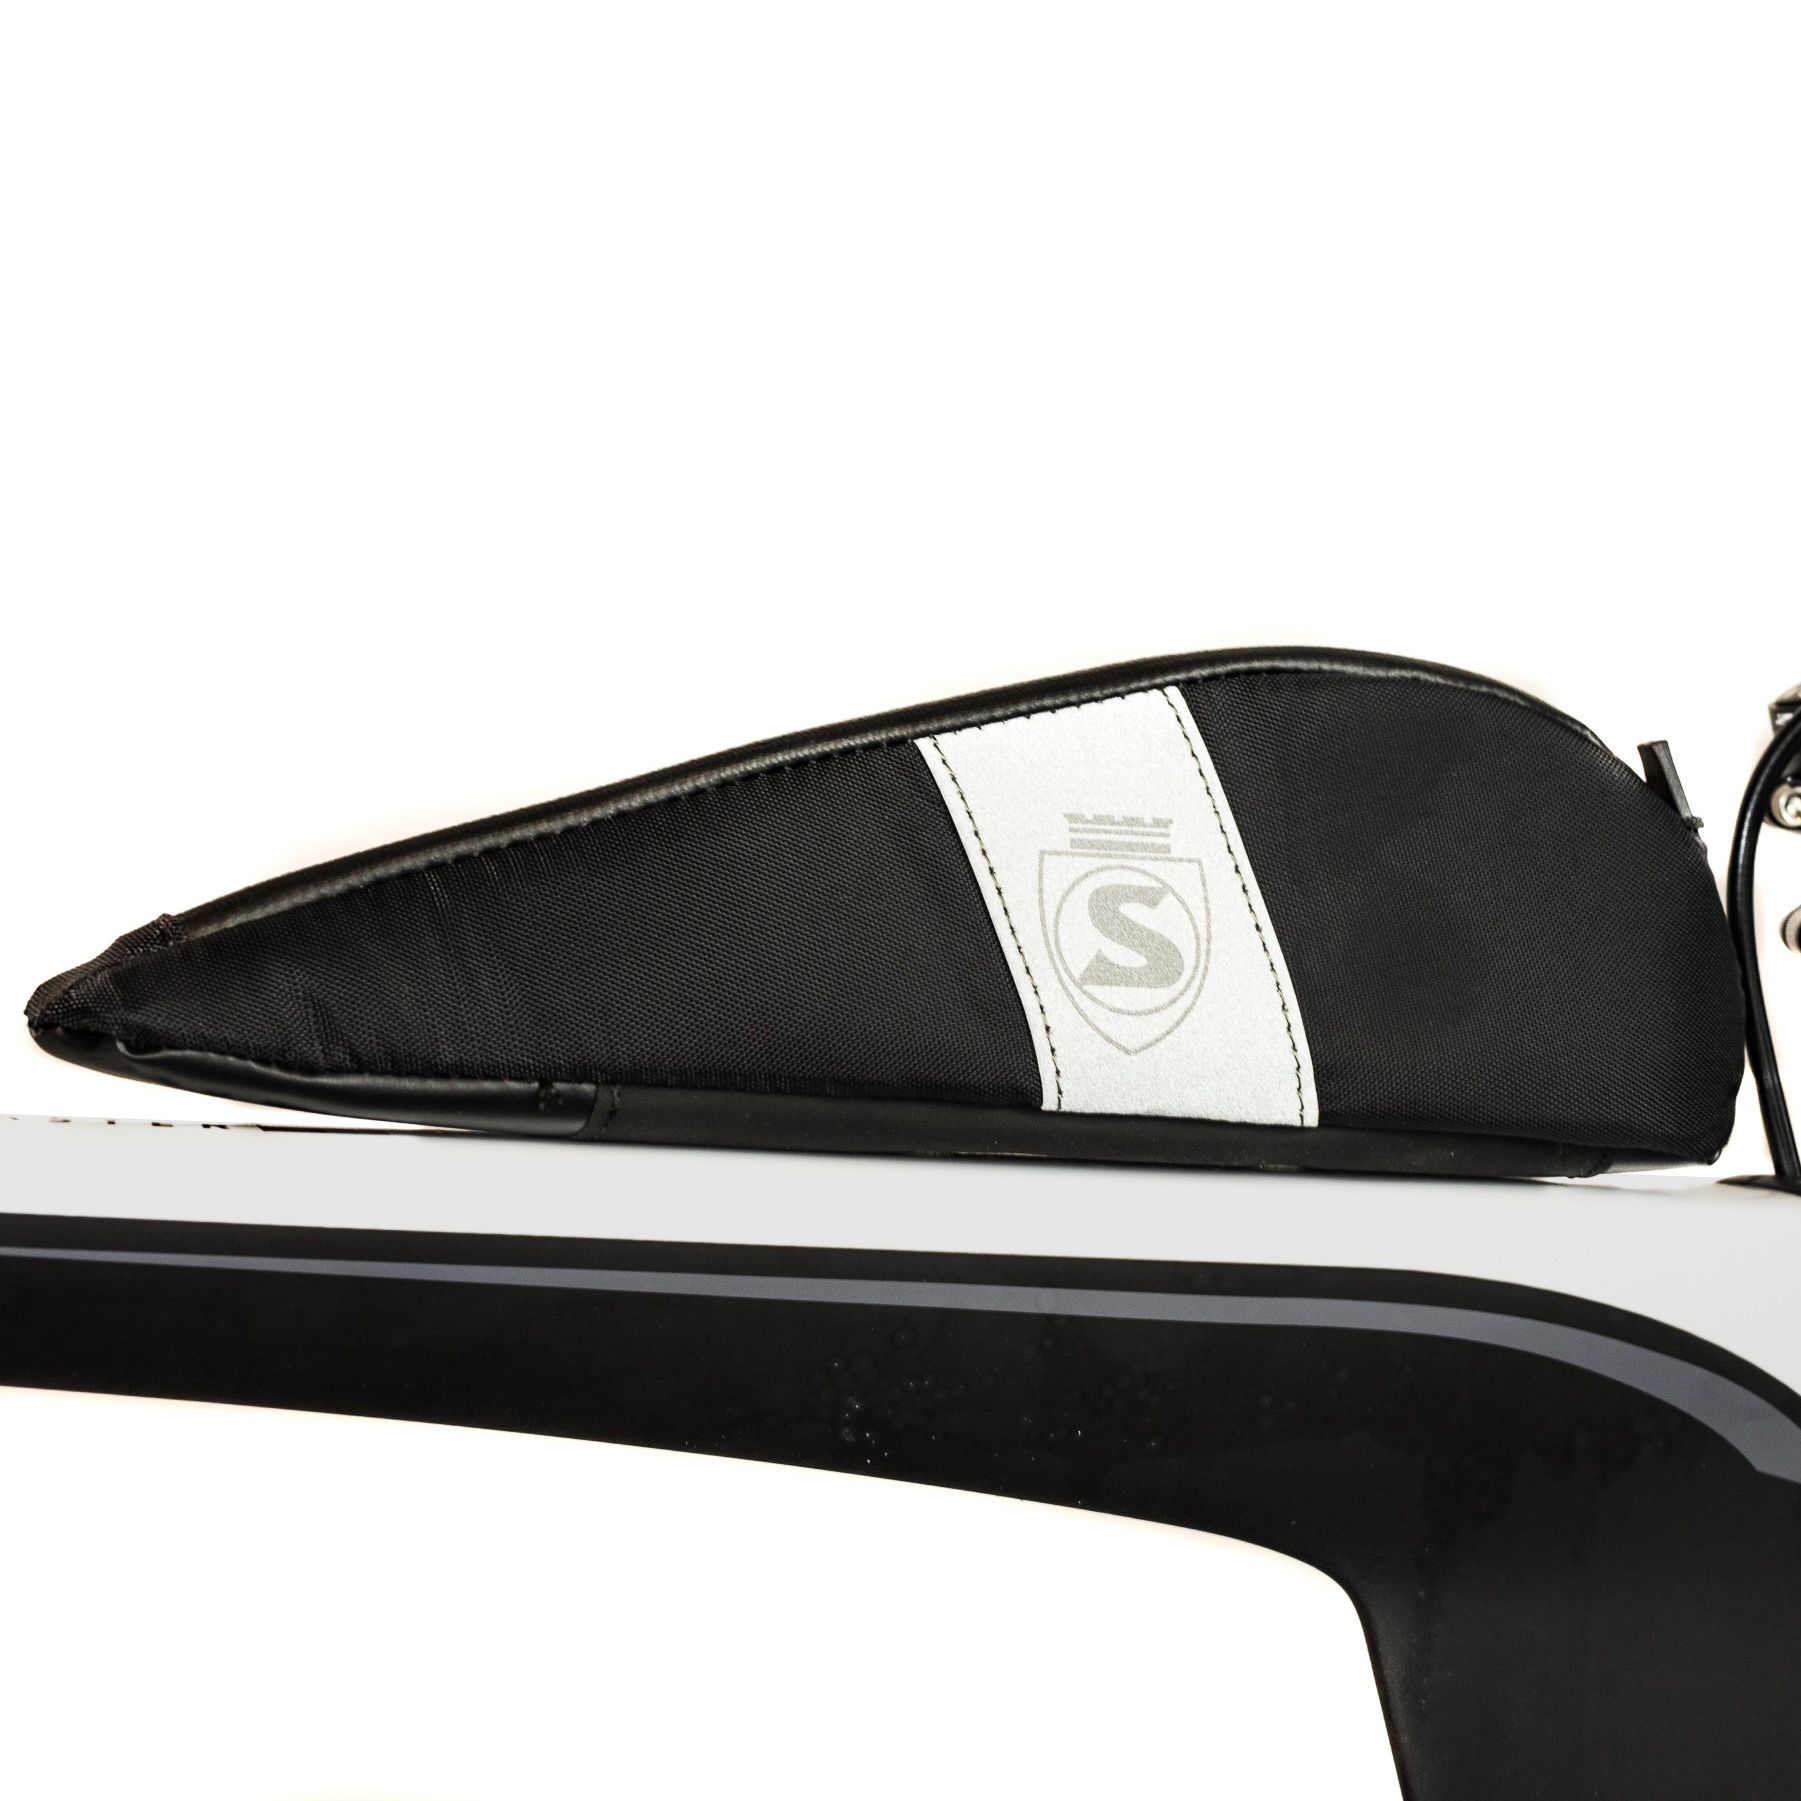 Silca Speed Capsule TT Saddle Bag | Saddle bags